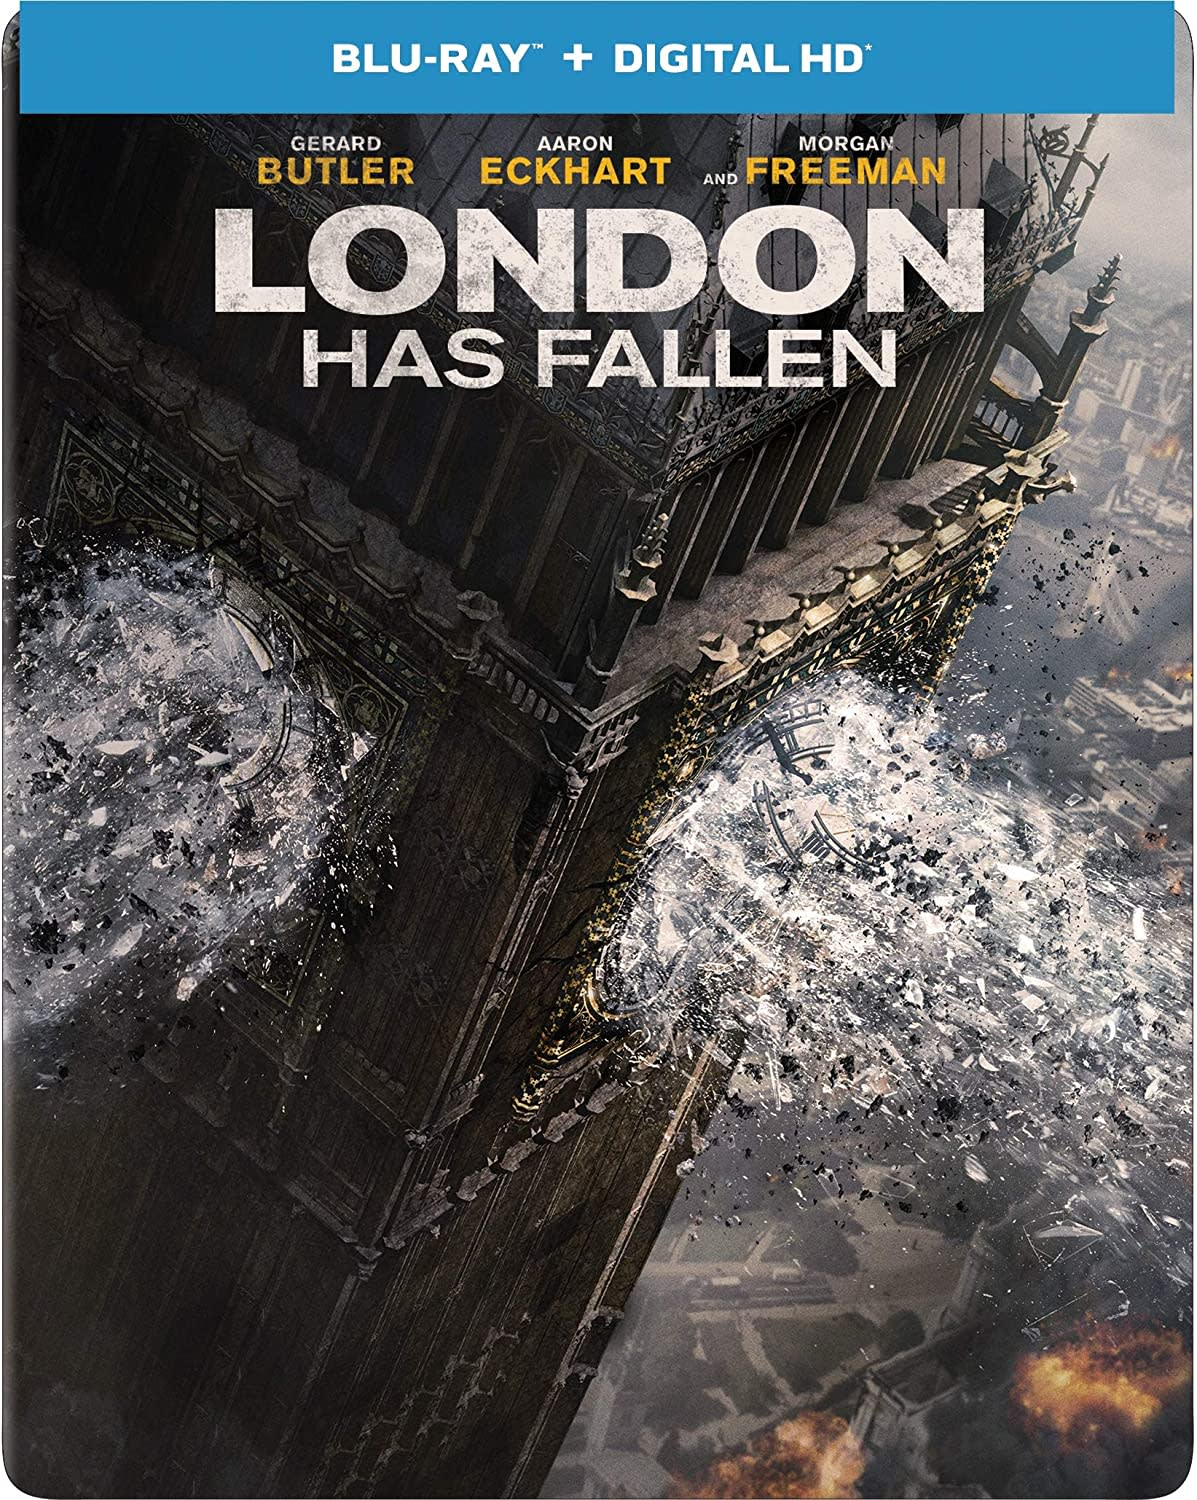 London Has Fallen (Limited Edition Steelbook) [Blu-ray]